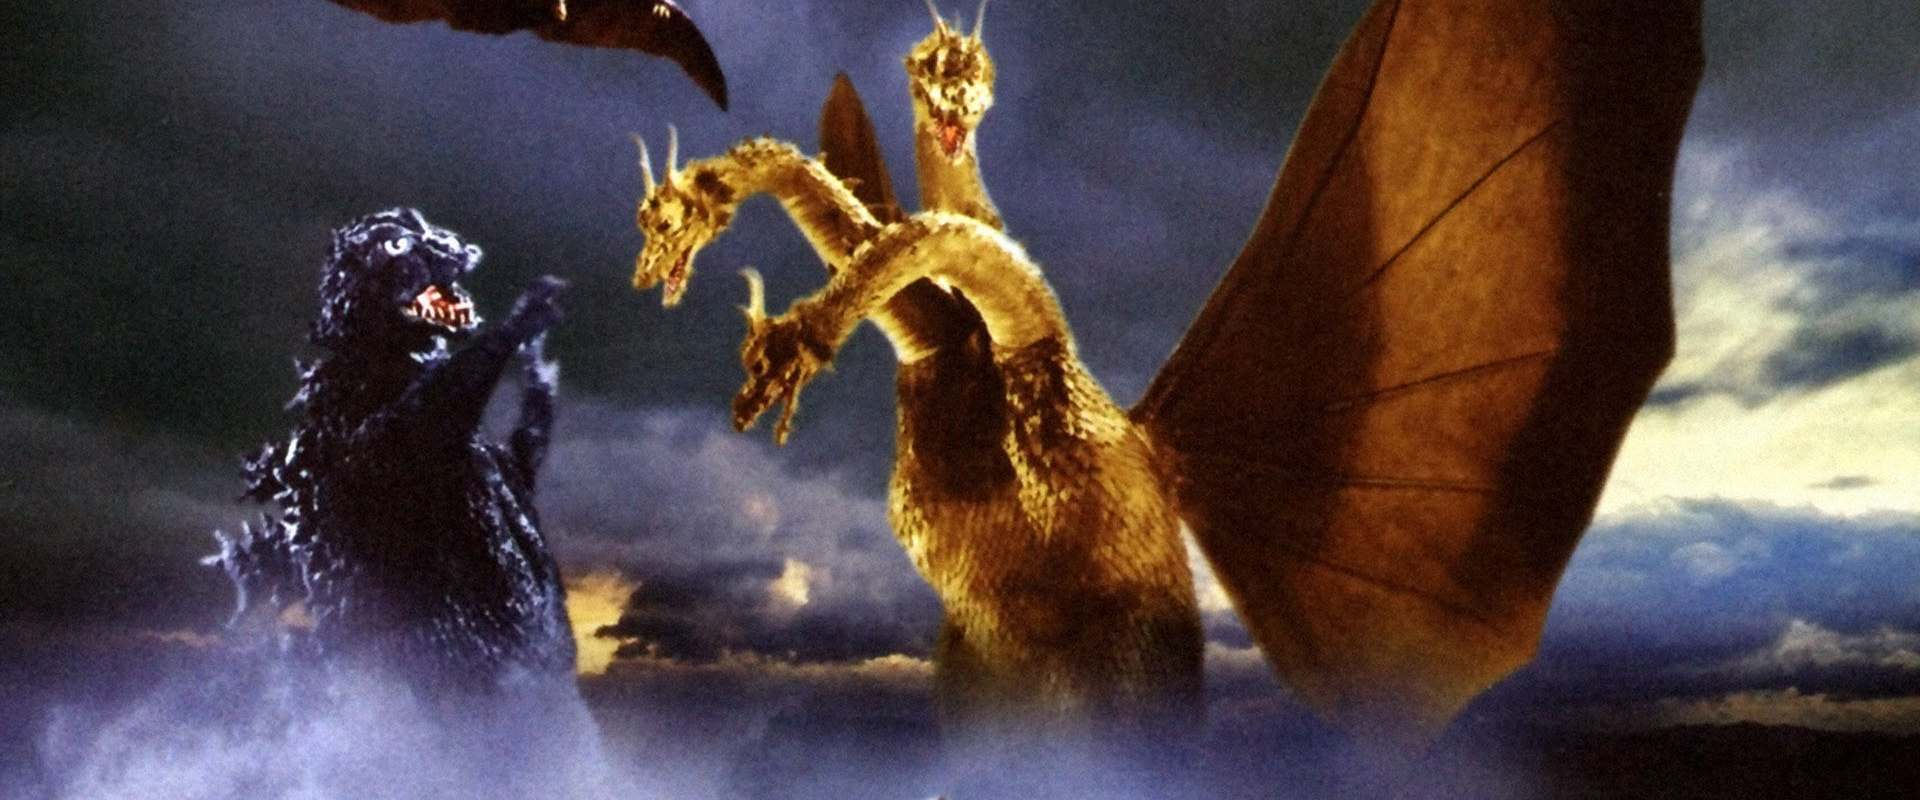 Ghidorah, the Three-Headed Monster background 2